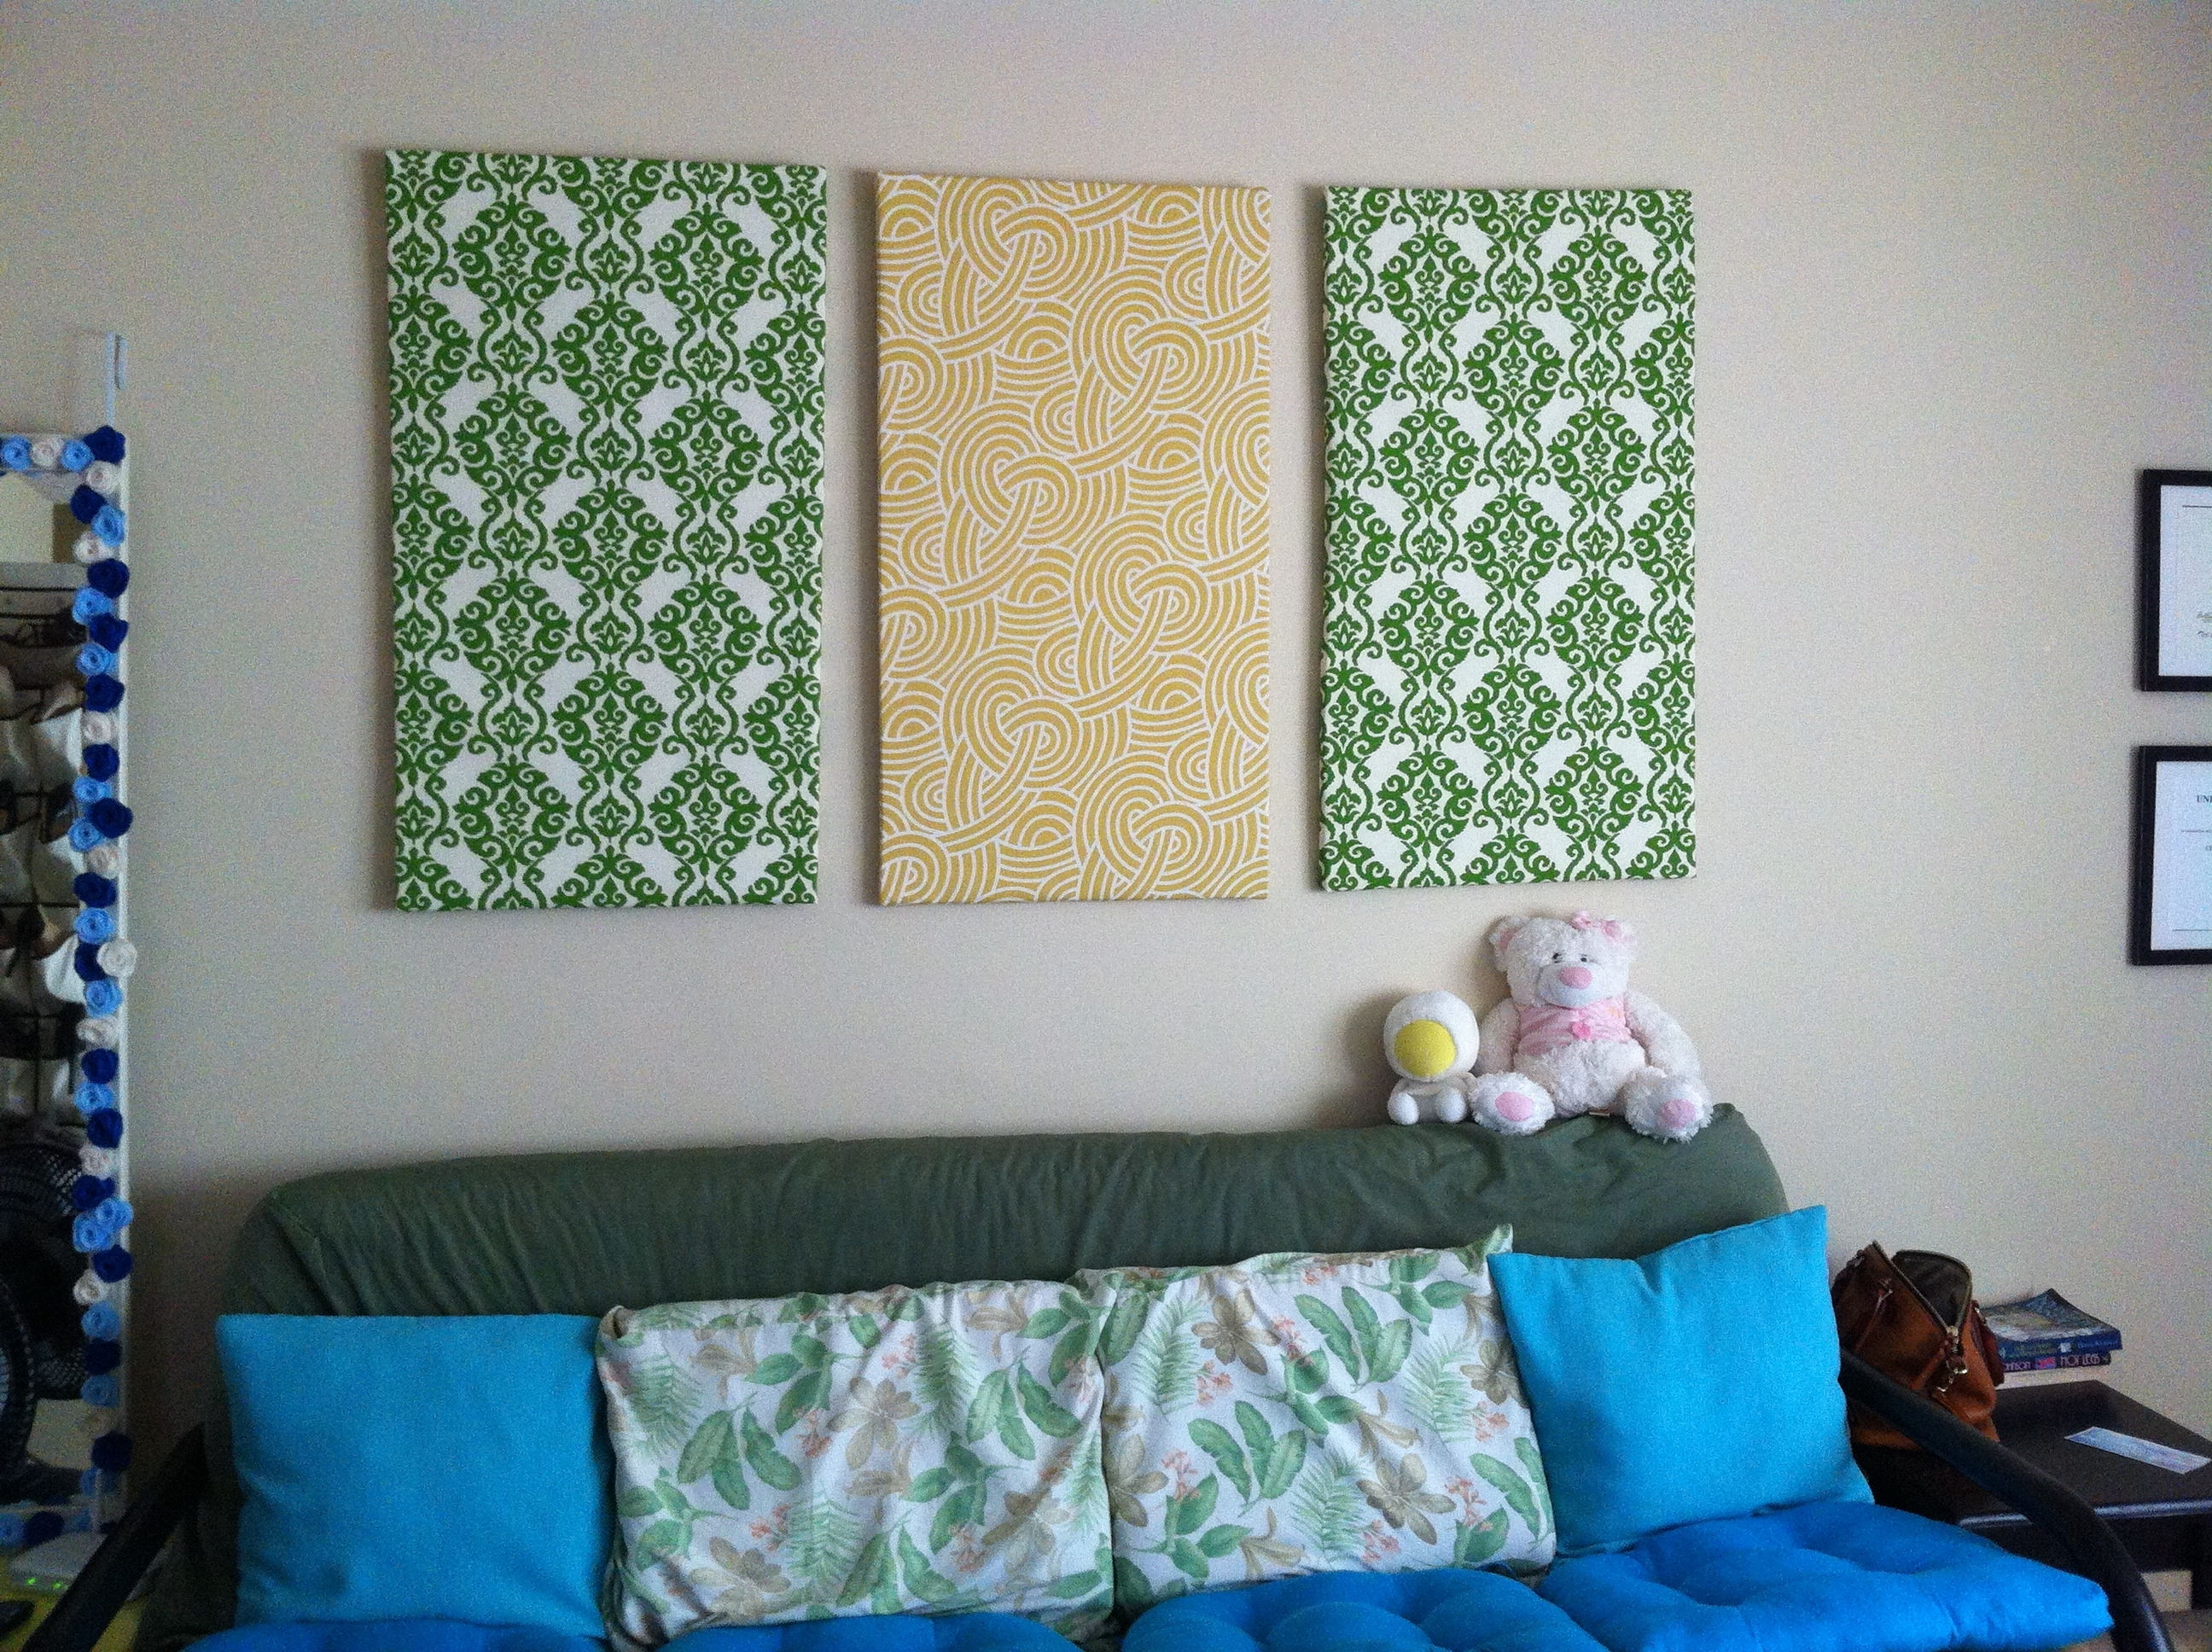 Art: Diy Fabric Wall Art With Regard To Most Recent Canvas Wall Art With Fabric (Gallery 12 of 15)